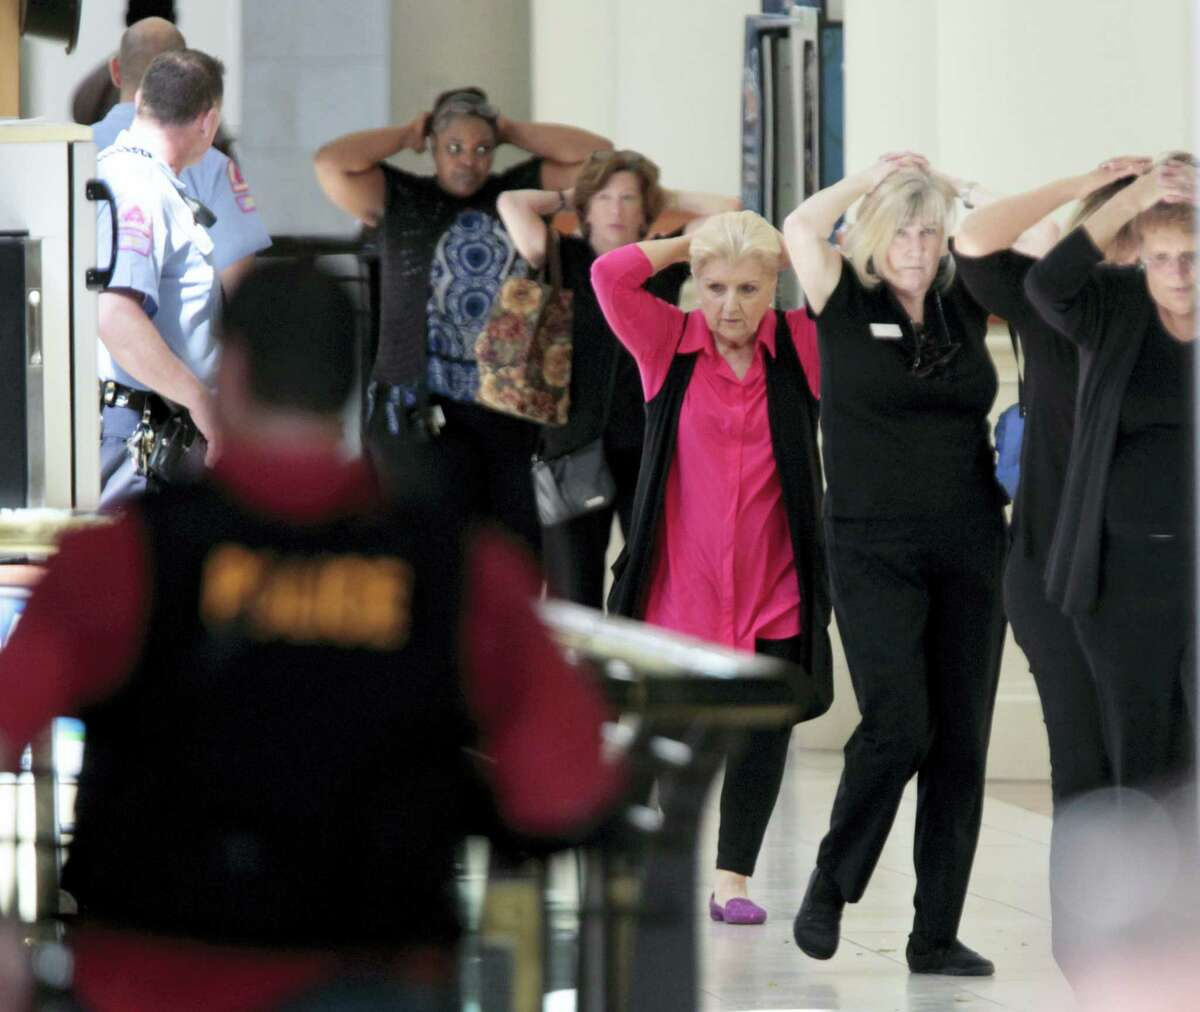 Mall workers and visitors exit to safety through the upper floor food court at Crabtree Valley Mall with hands on their heads as the mall is evacuated in Raleigh, N.C., Saturday, Aug. 13, 2016. Raleigh's police chief says investigators are still trying to determine whether there was a shooting at the Raleigh mall where witnesses reported hearing gunfire.